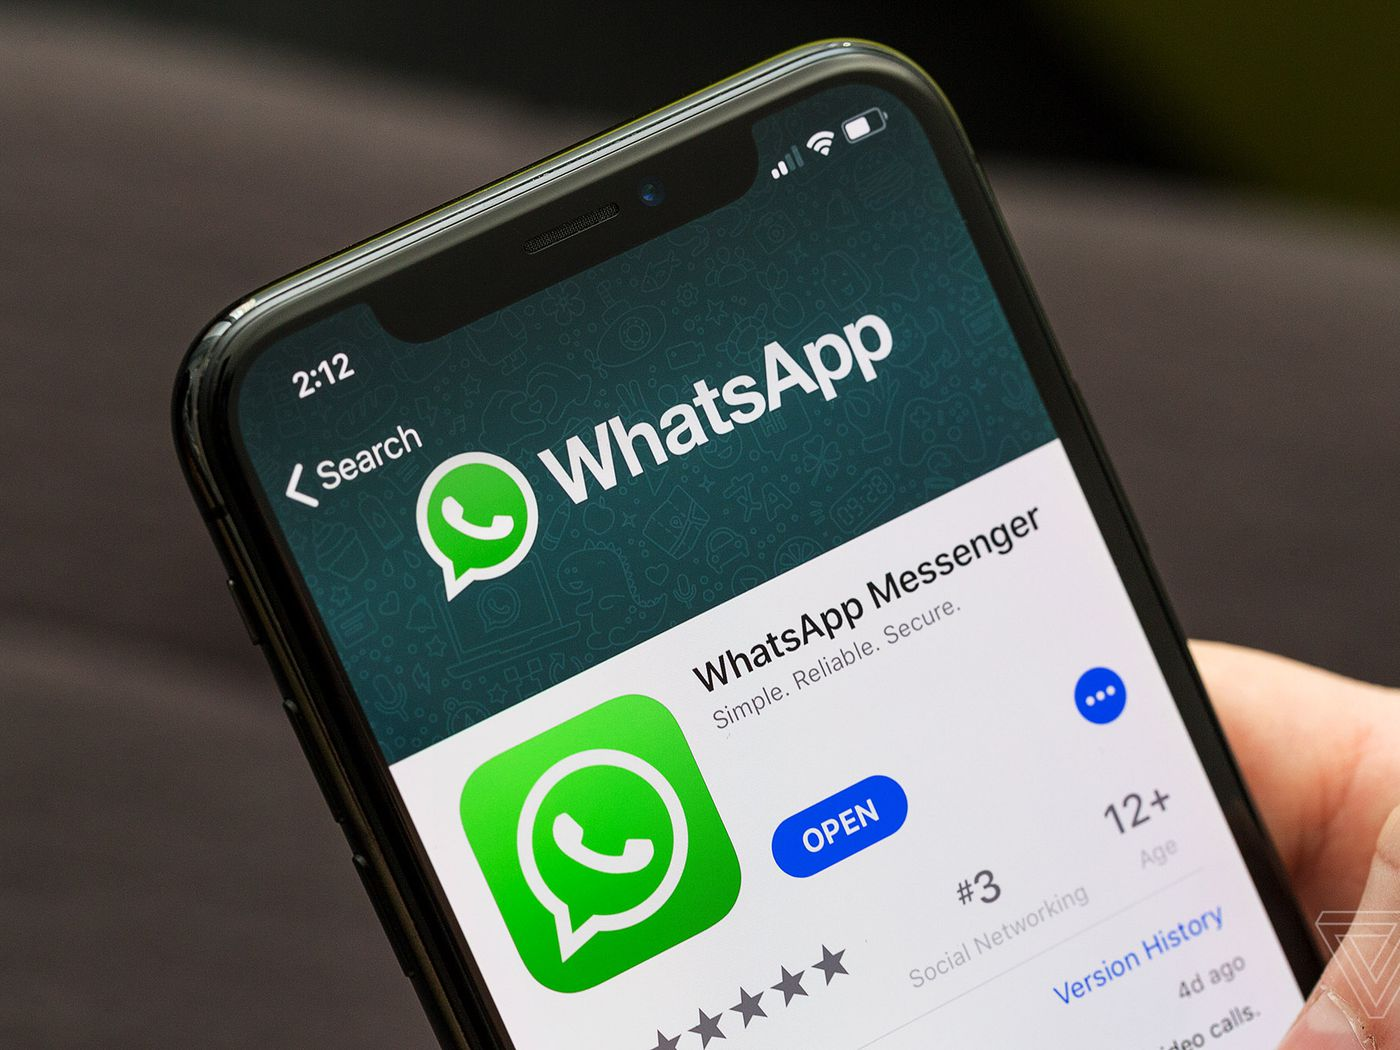 WhatsApp says users must be 16 or older to access the app in